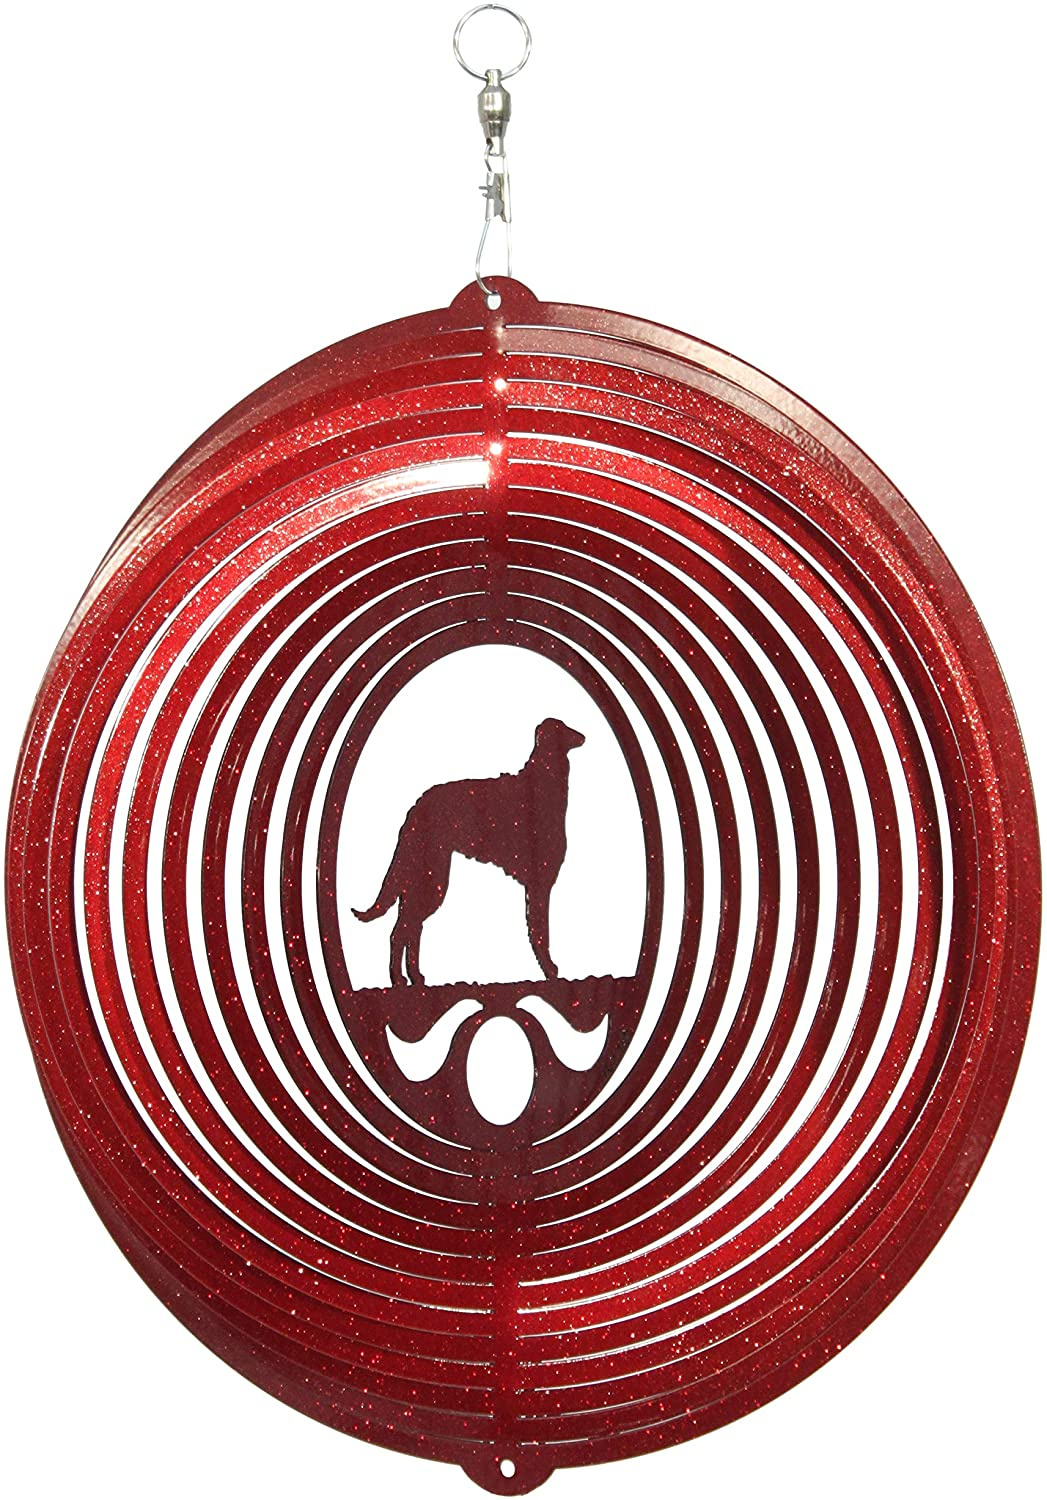 SWEN Products Borzoi Circle Swirly Metal Wind Spinner